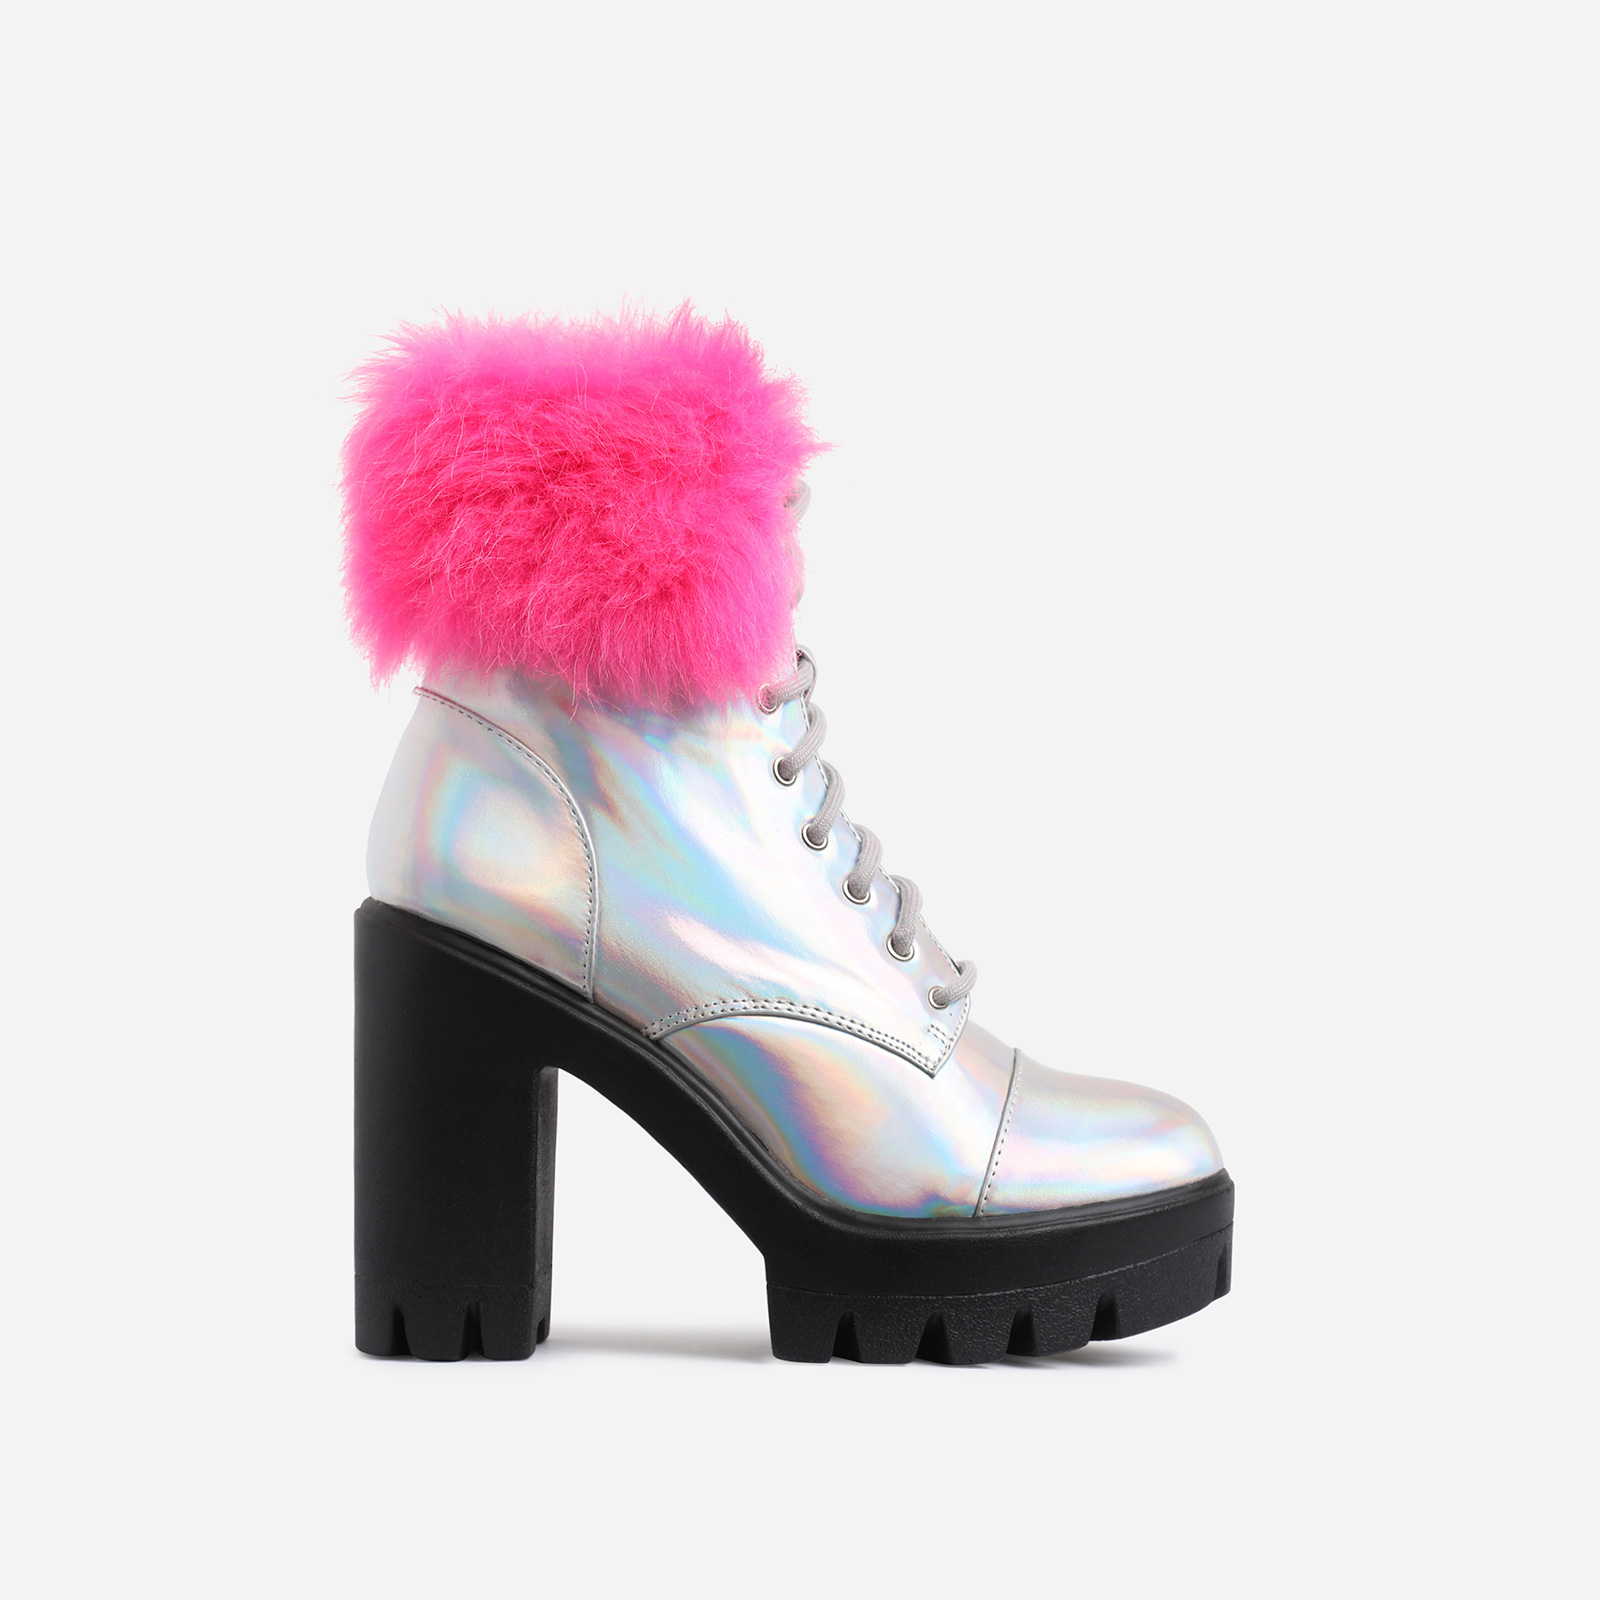 Toasty Pink Faux Fur Lace Up Block Heel Ankle Biker Boot In Silver Holographic Faux Leather